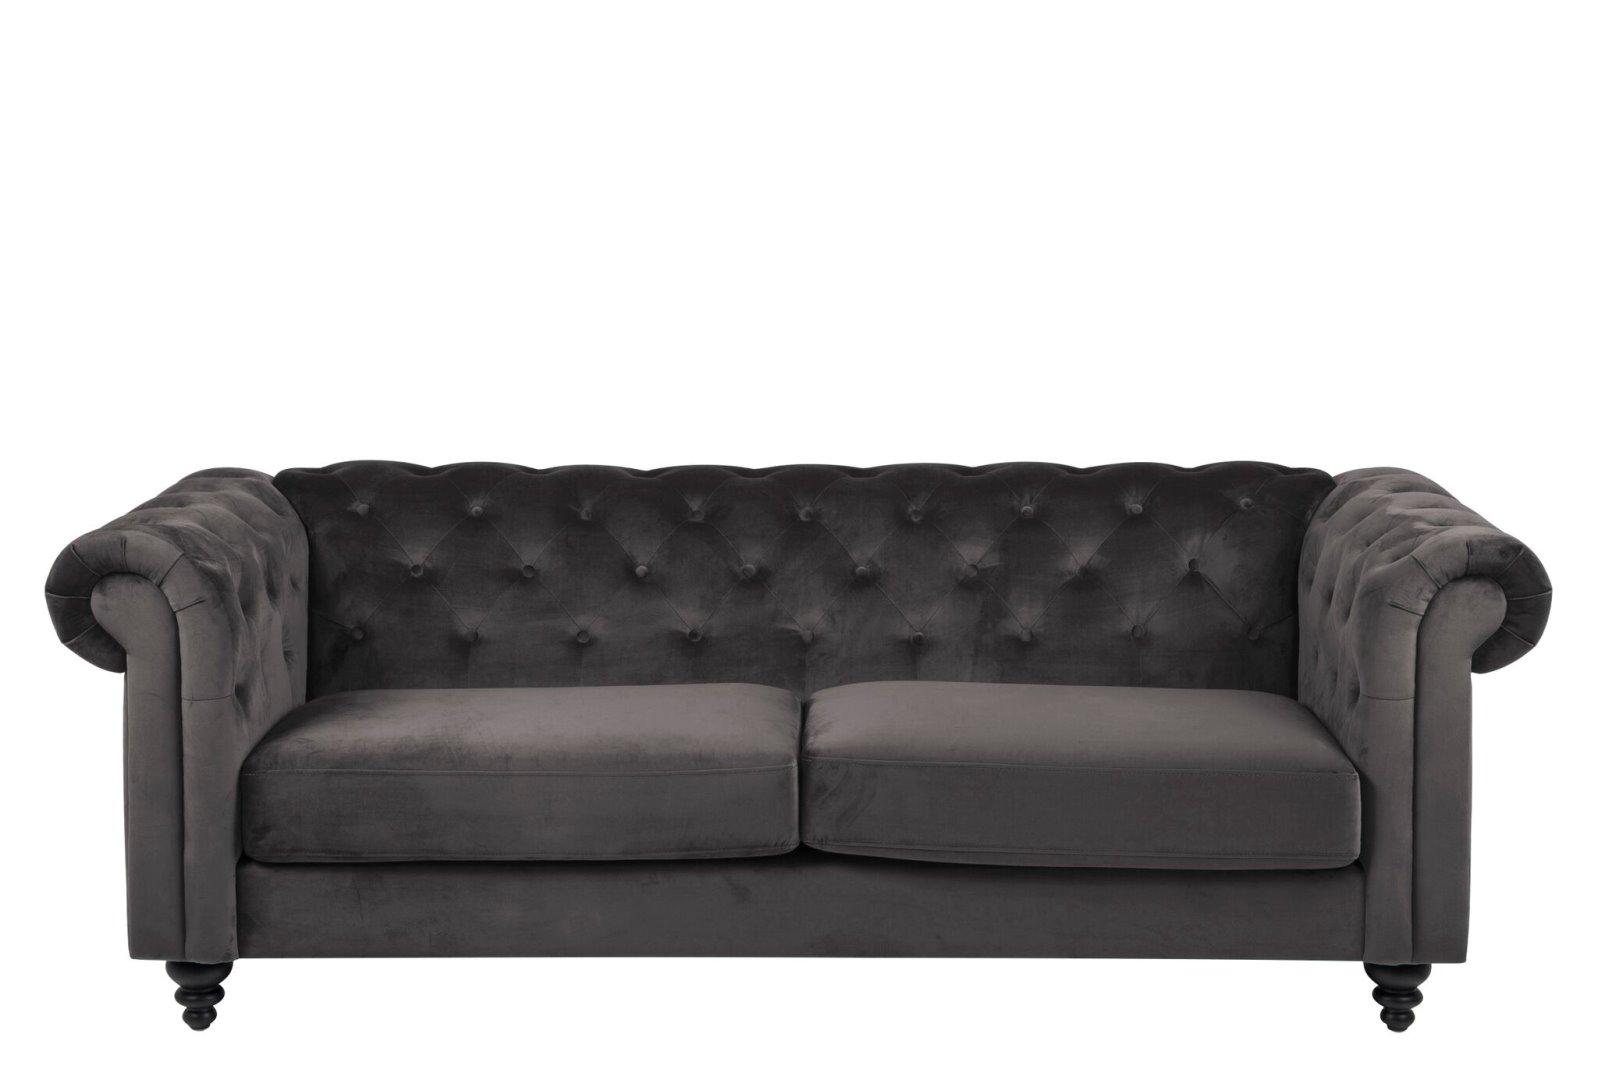 Sacly Lounge Sessel Sofa Charlie 3 Personen In Grau Couch Stoffsofa Sitzmöbel Designsofa